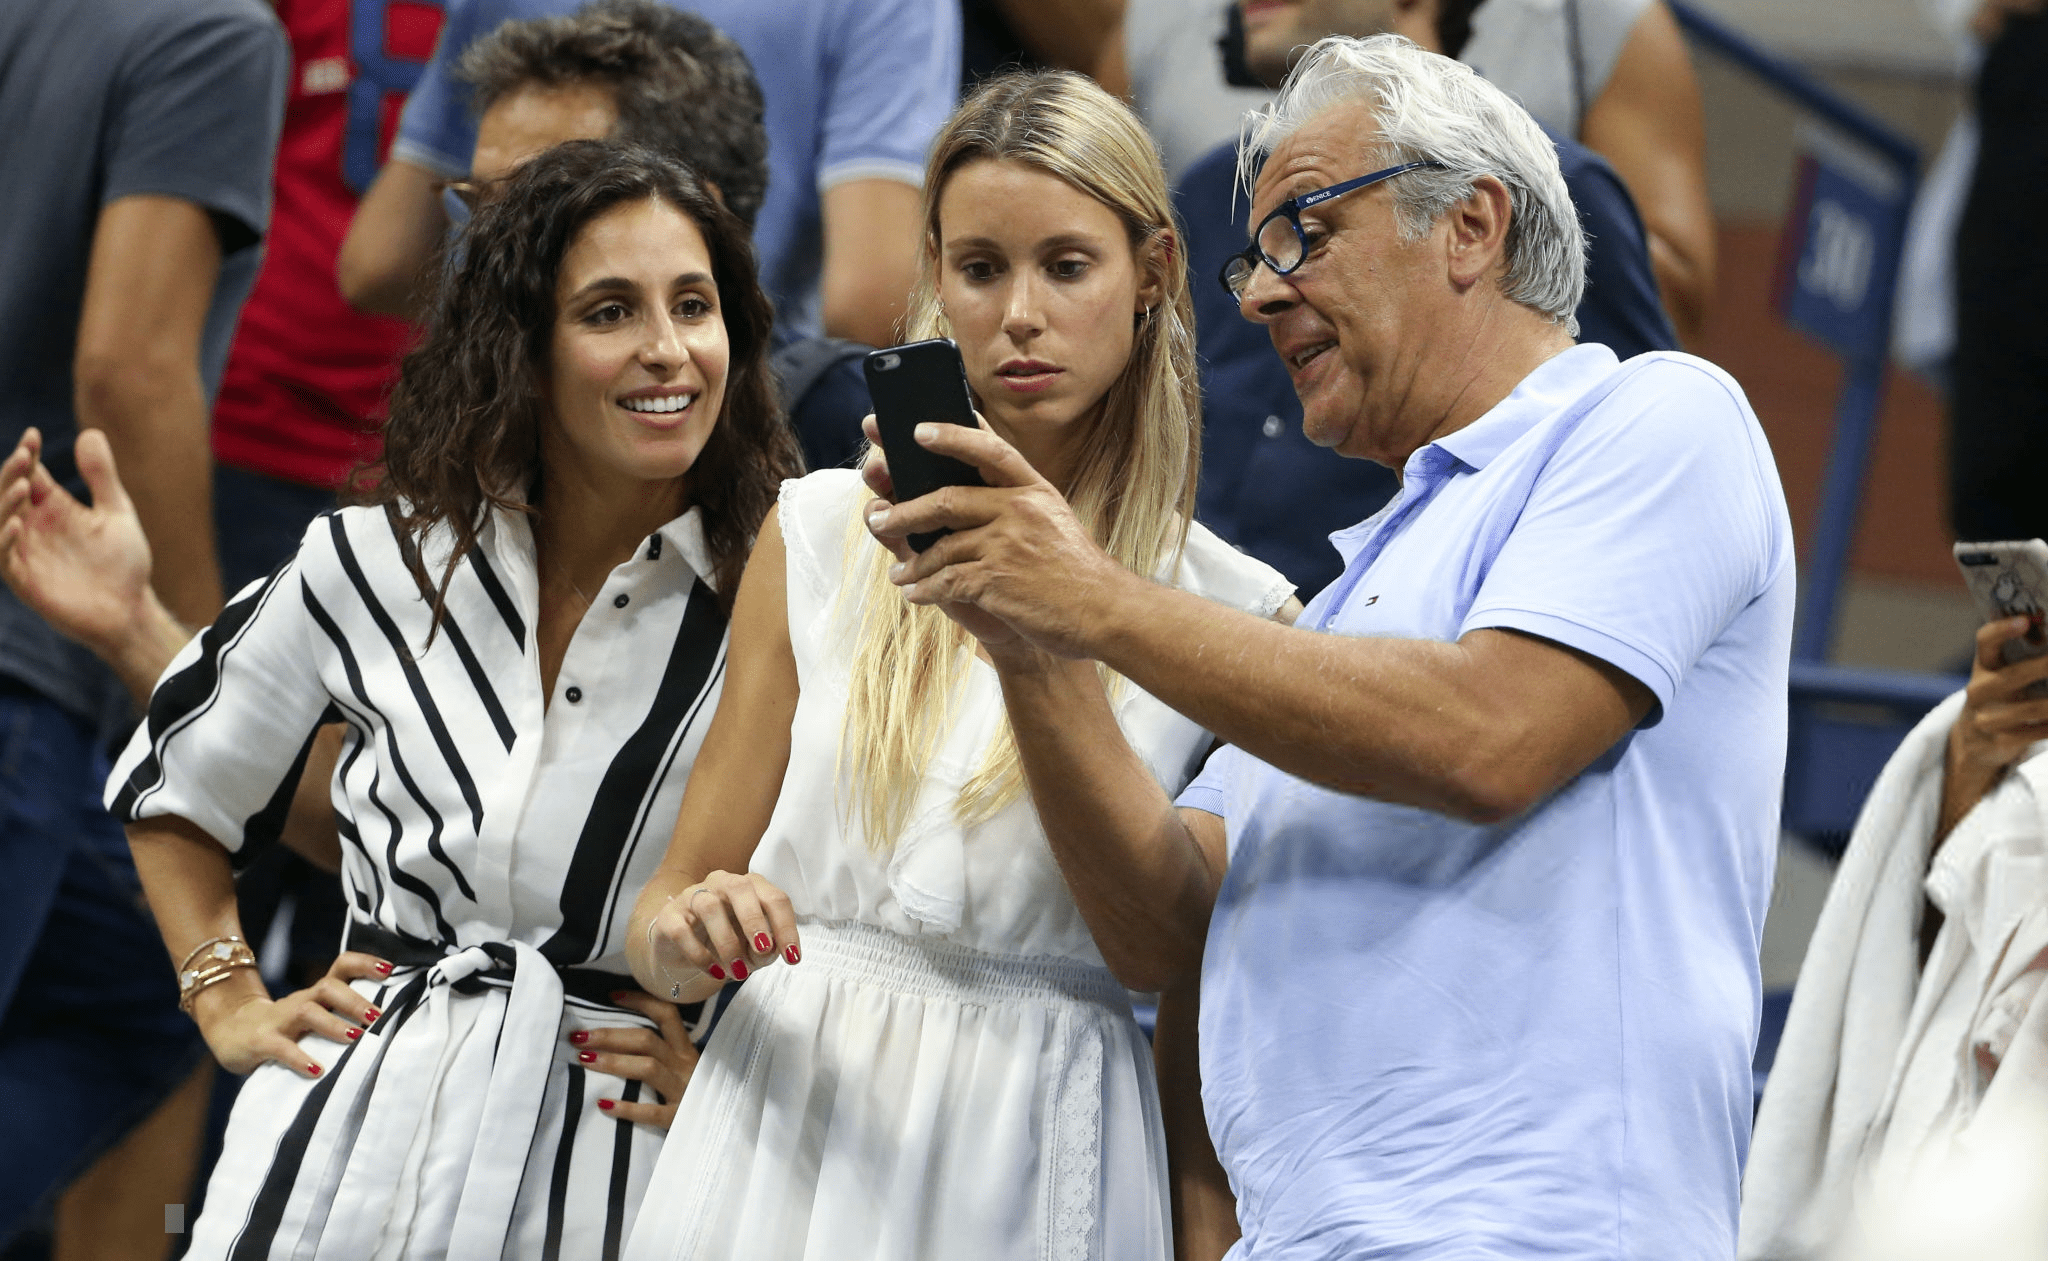 Rafael Nadal Girlfriend Sister And Father At 2018 Us Open Photo Qf Rafael Nadal Fans